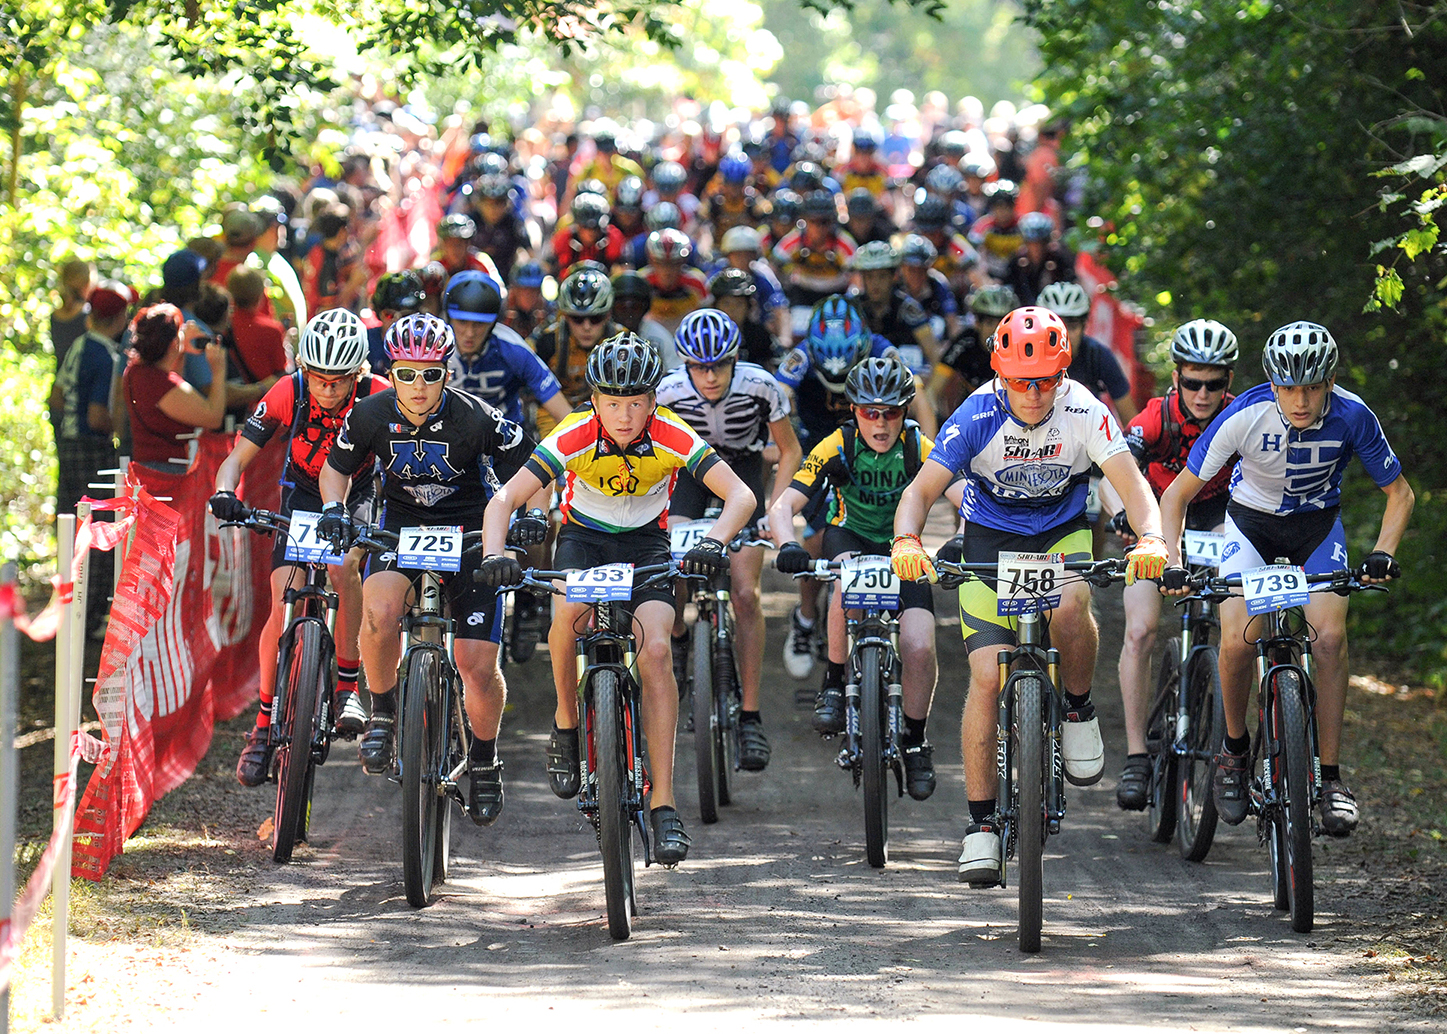 QBP works to develop a high school mountain bike league for Minnesota. Sjoquist works with NICA to launch the league with 155 student athletes participating in the first year (2012). As of 2017, that number is well over 1,000 student athletes.